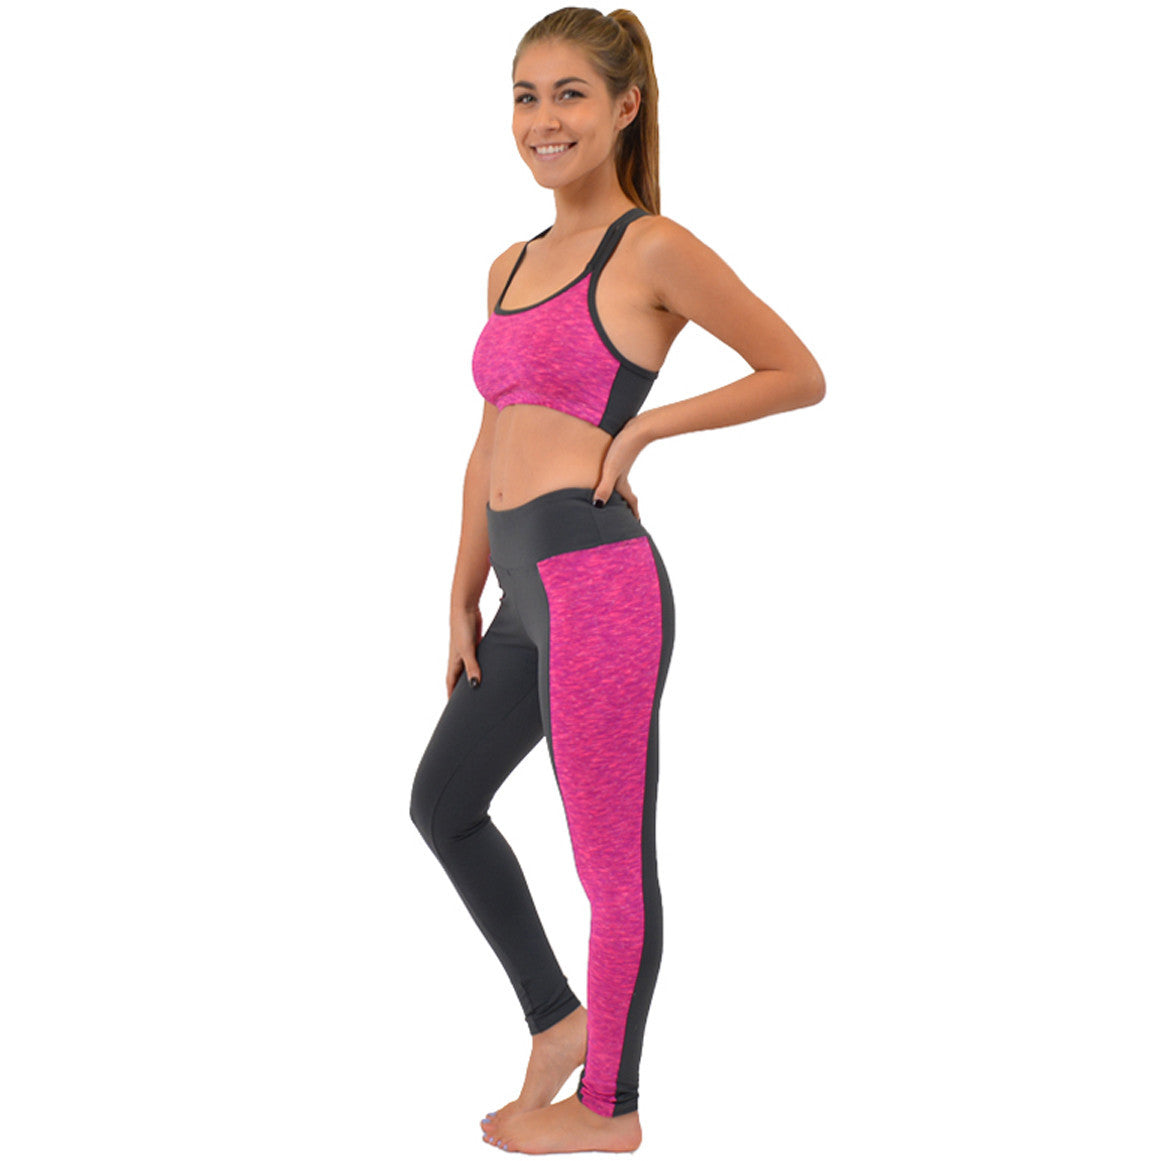 Teamwear Vicky Two-Tone Leggings